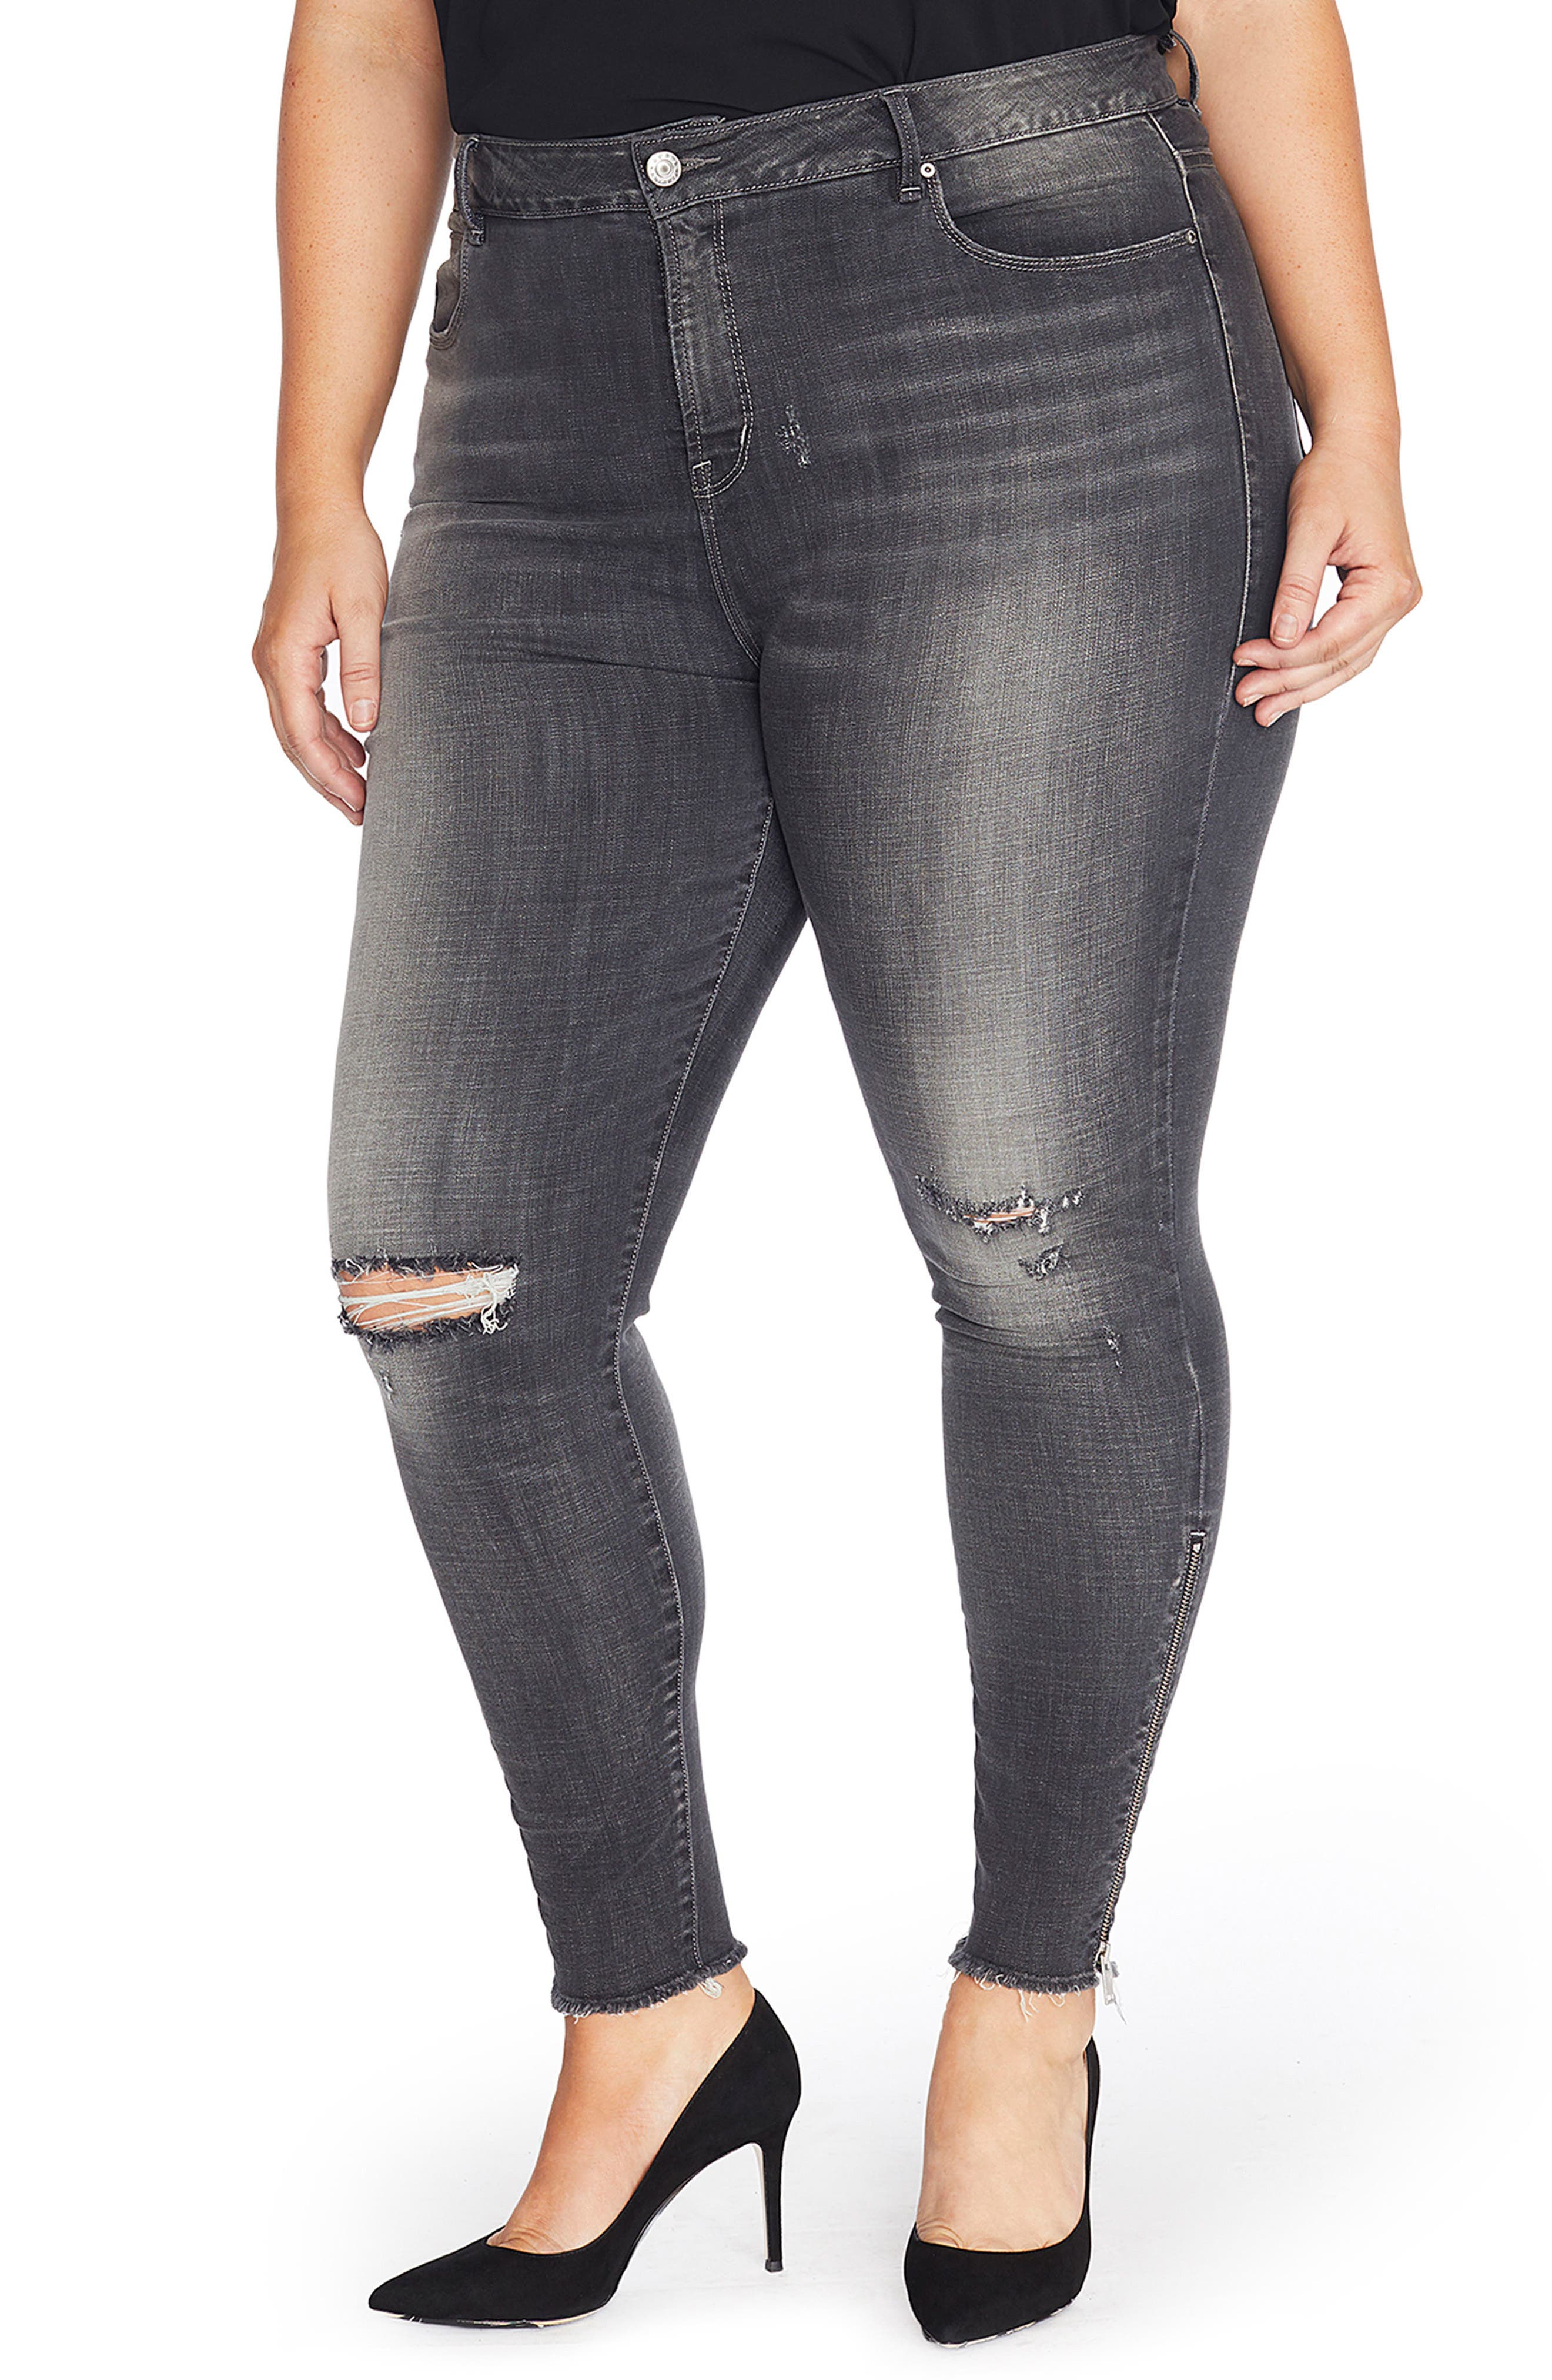 Main Image - Rebel Wilson x Angels The Icon High Rise Super Skinny Jeans (Plus Size)